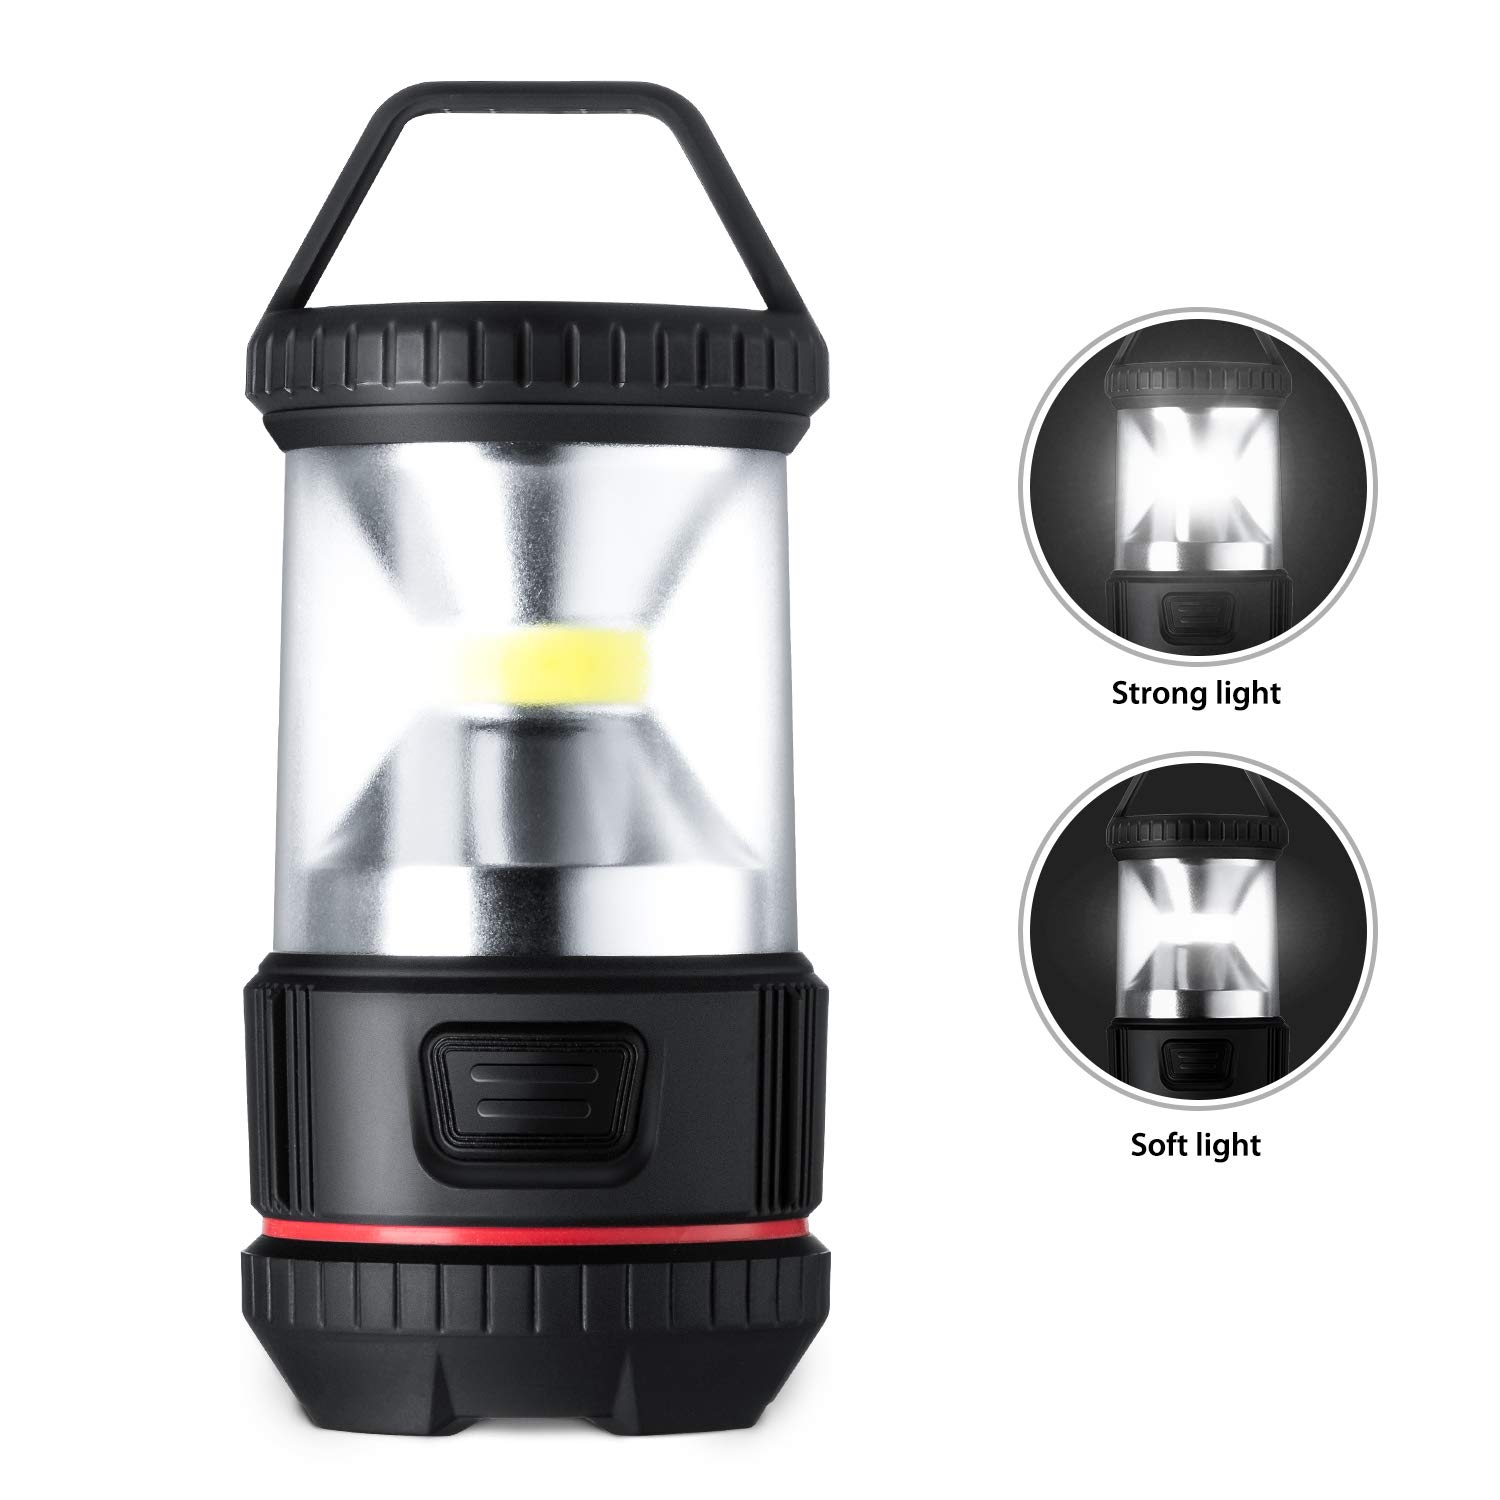 LED Camping Lantern, OutingPro 4 Pack COB Mini Flashlight Battery Operated Brightness Adjustable Lamp Waterproof Portable Hanging Light for Emergencies, Outdoor, Hurricanes, Outages, Storms